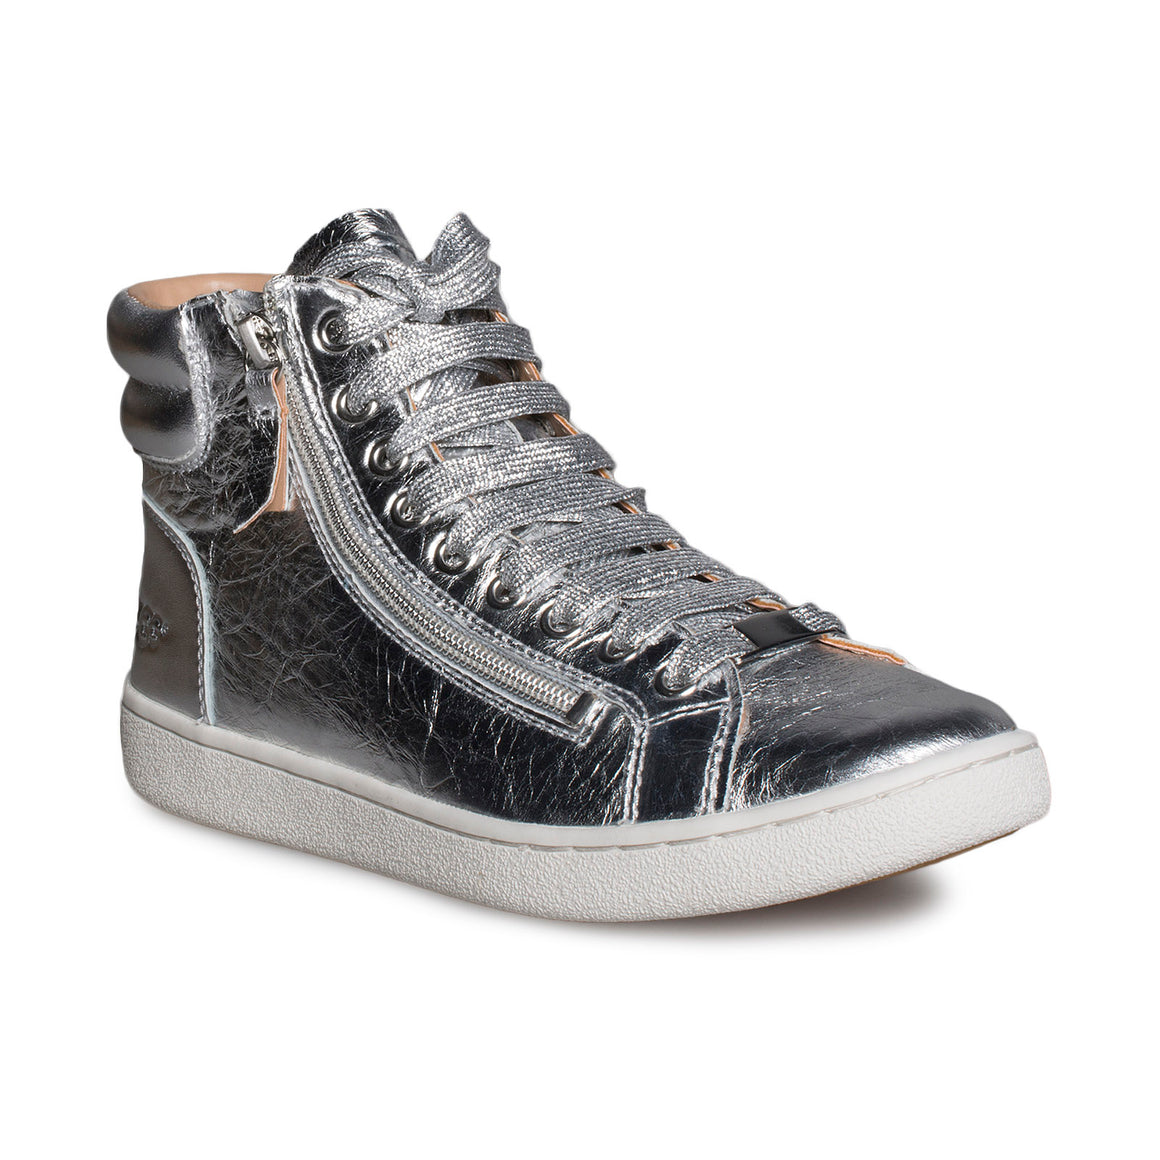 UGG Olive Metallic Silver Sneakers - Women's